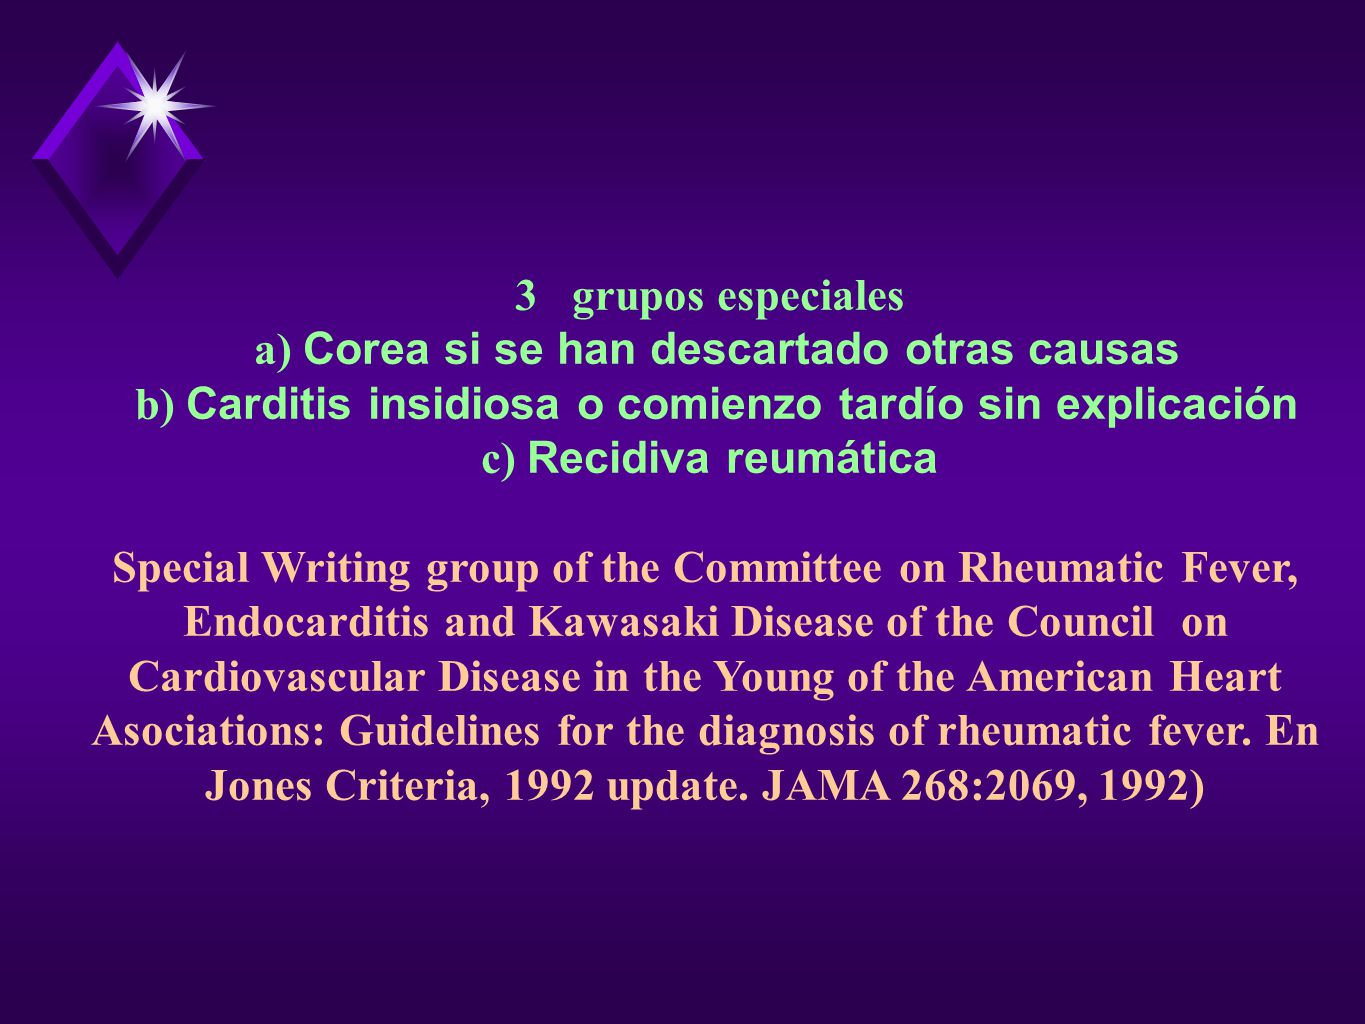 3 grupos especiales a) Corea si se han descartado otras causas b) Carditis insidiosa o comienzo tardío sin explicación c) Recidiva reumática Special Writing group of the Committee on Rheumatic Fever, Endocarditis and Kawasaki Disease of the Council on Cardiovascular Disease in the Young of the American Heart Asociations: Guidelines for the diagnosis of rheumatic fever.